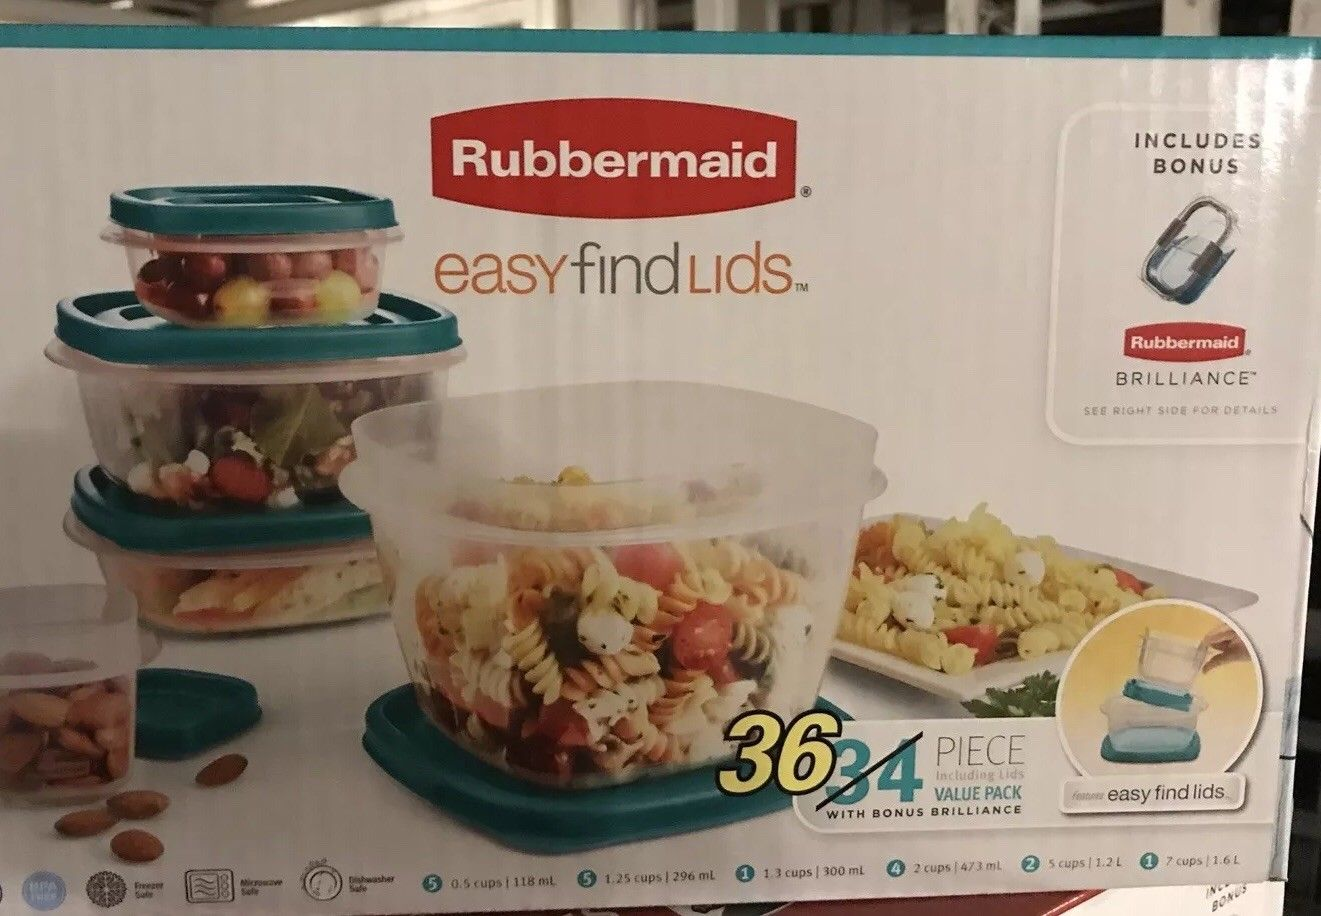 Rubbermaid Food Storage Container Set 36 Piece Easy Find Teal Lids PBA Free USA 1